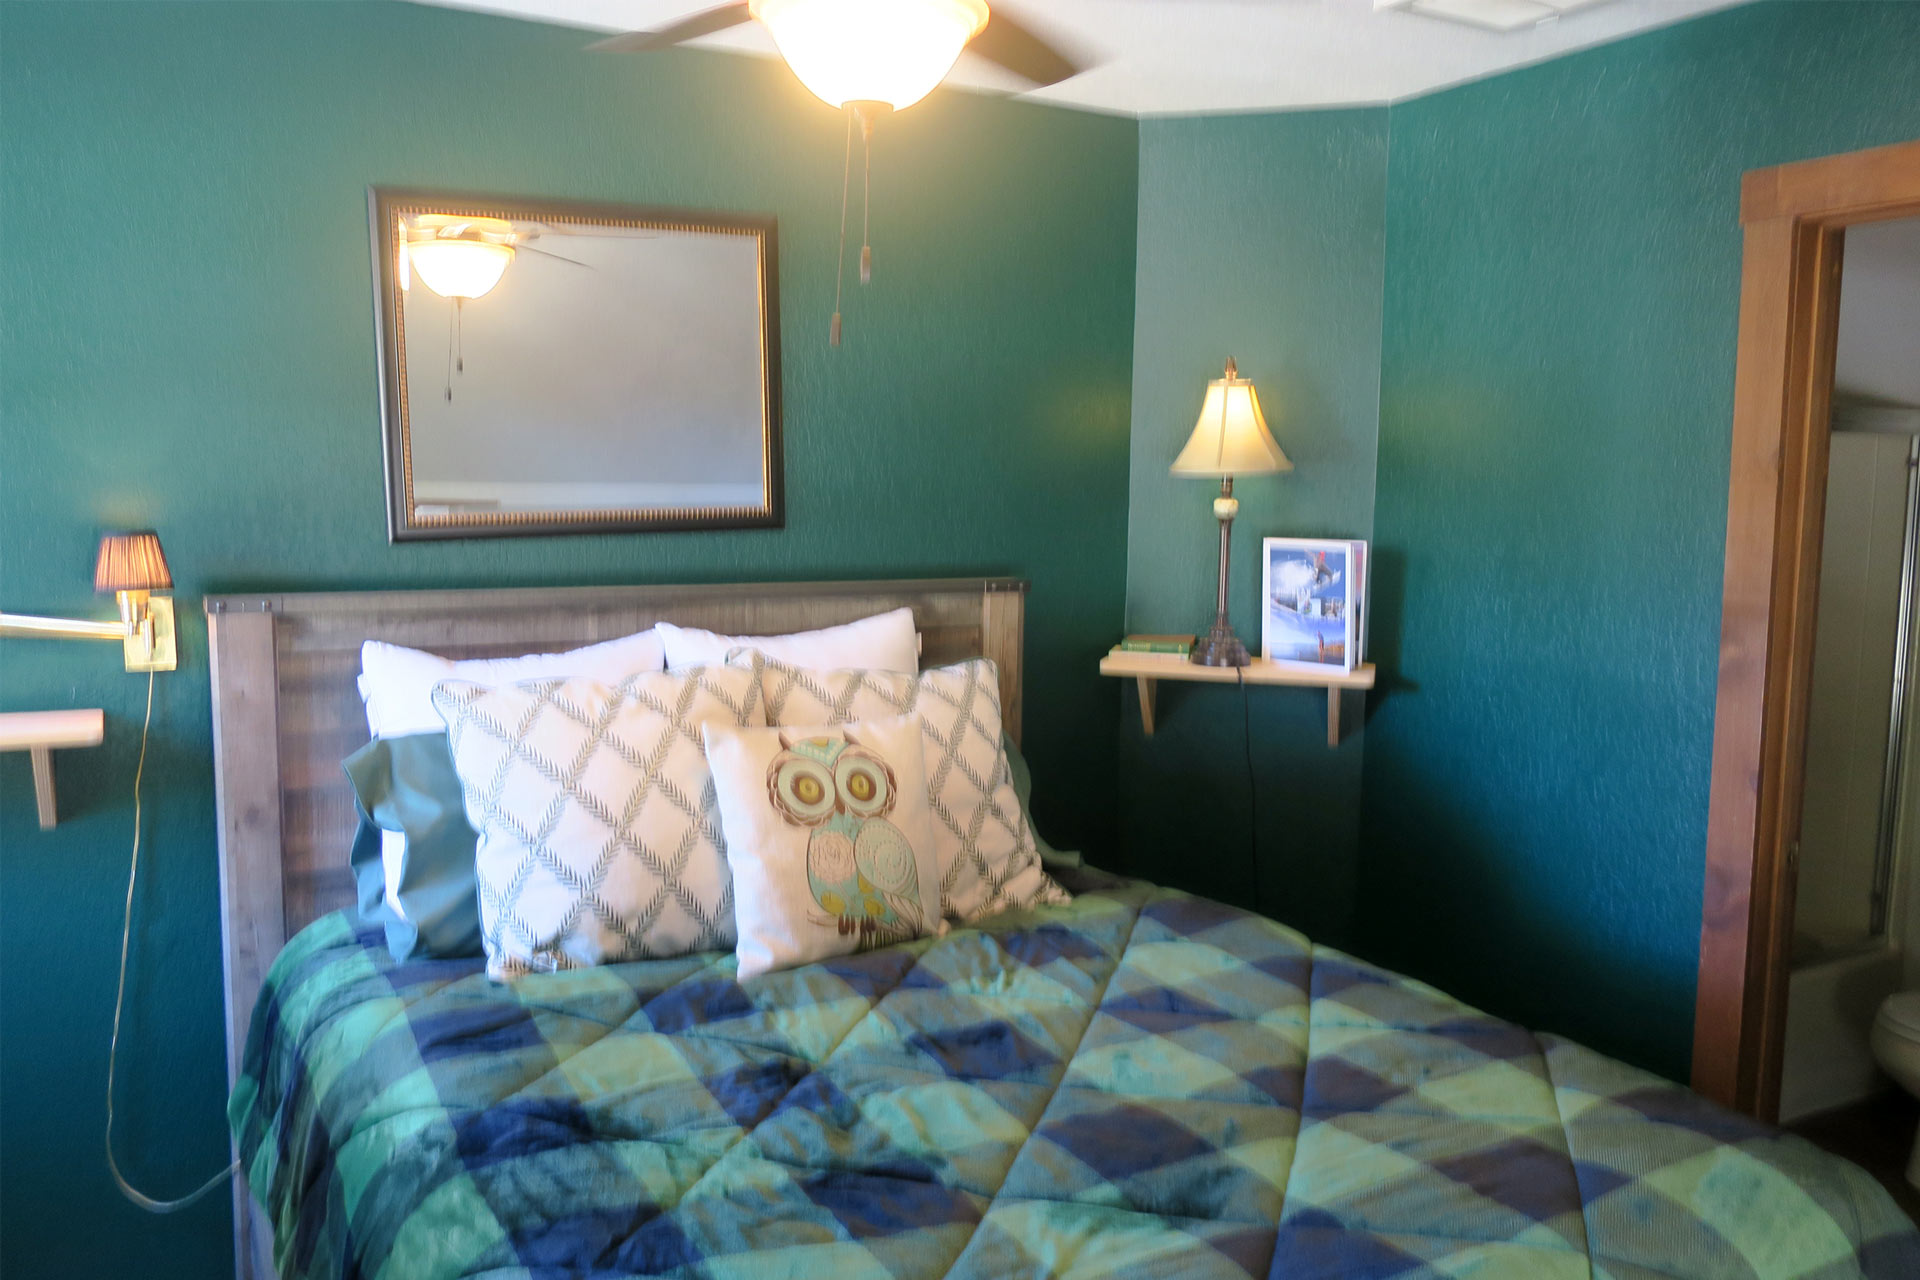 Queen-sized bed with an owl pillow at the Carriage house